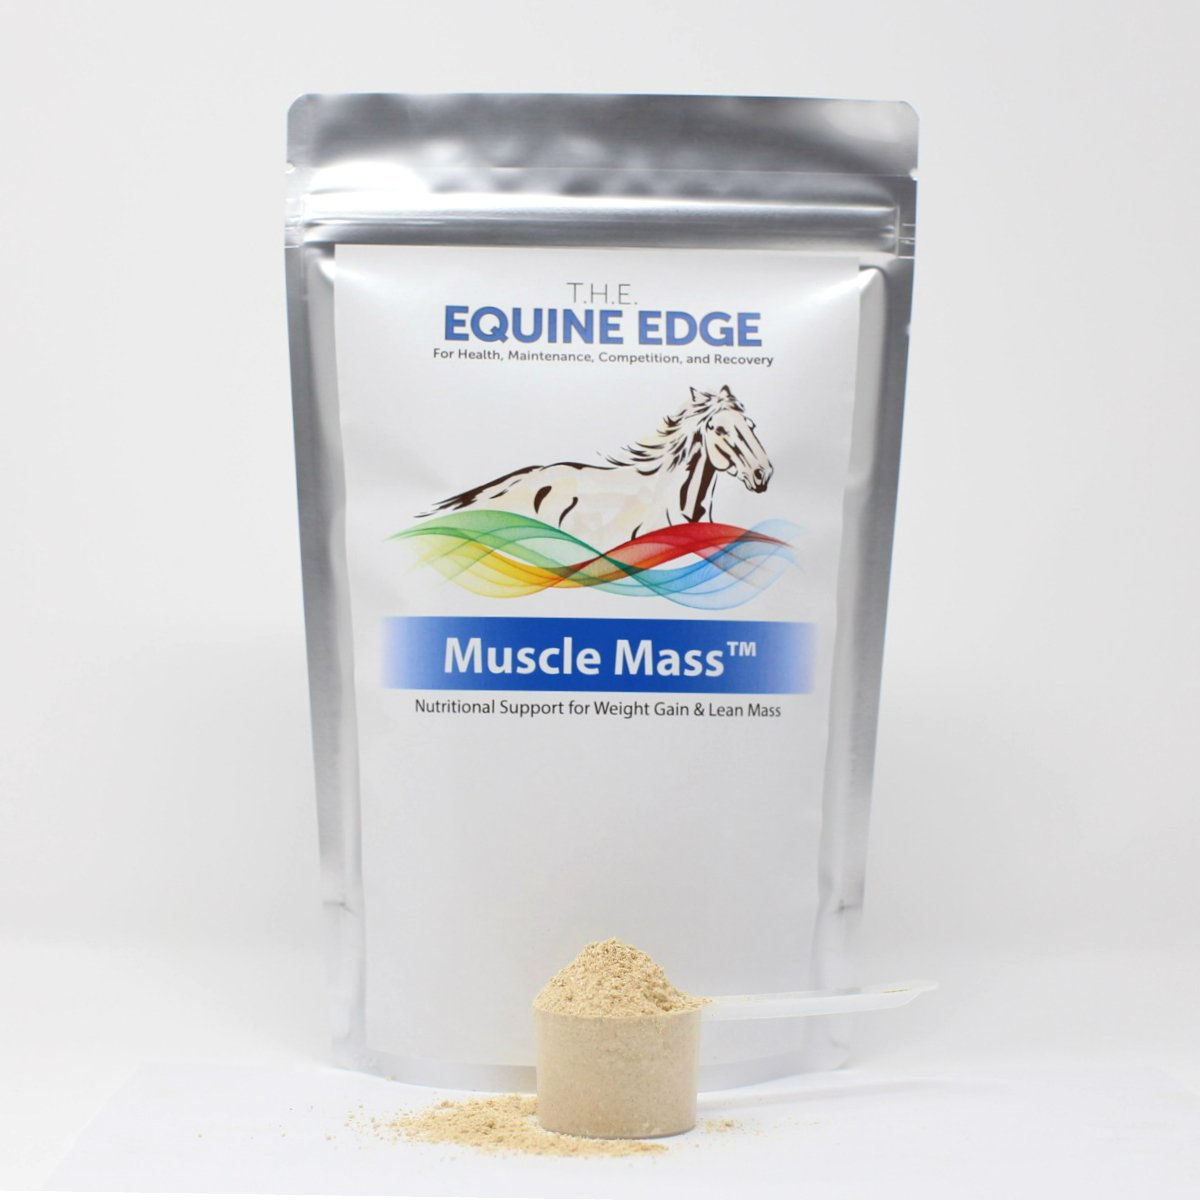 T.H.E. Equine Edge Muscle Mass - Lean Muscle & Weight Gain Supplement, 80 Servings